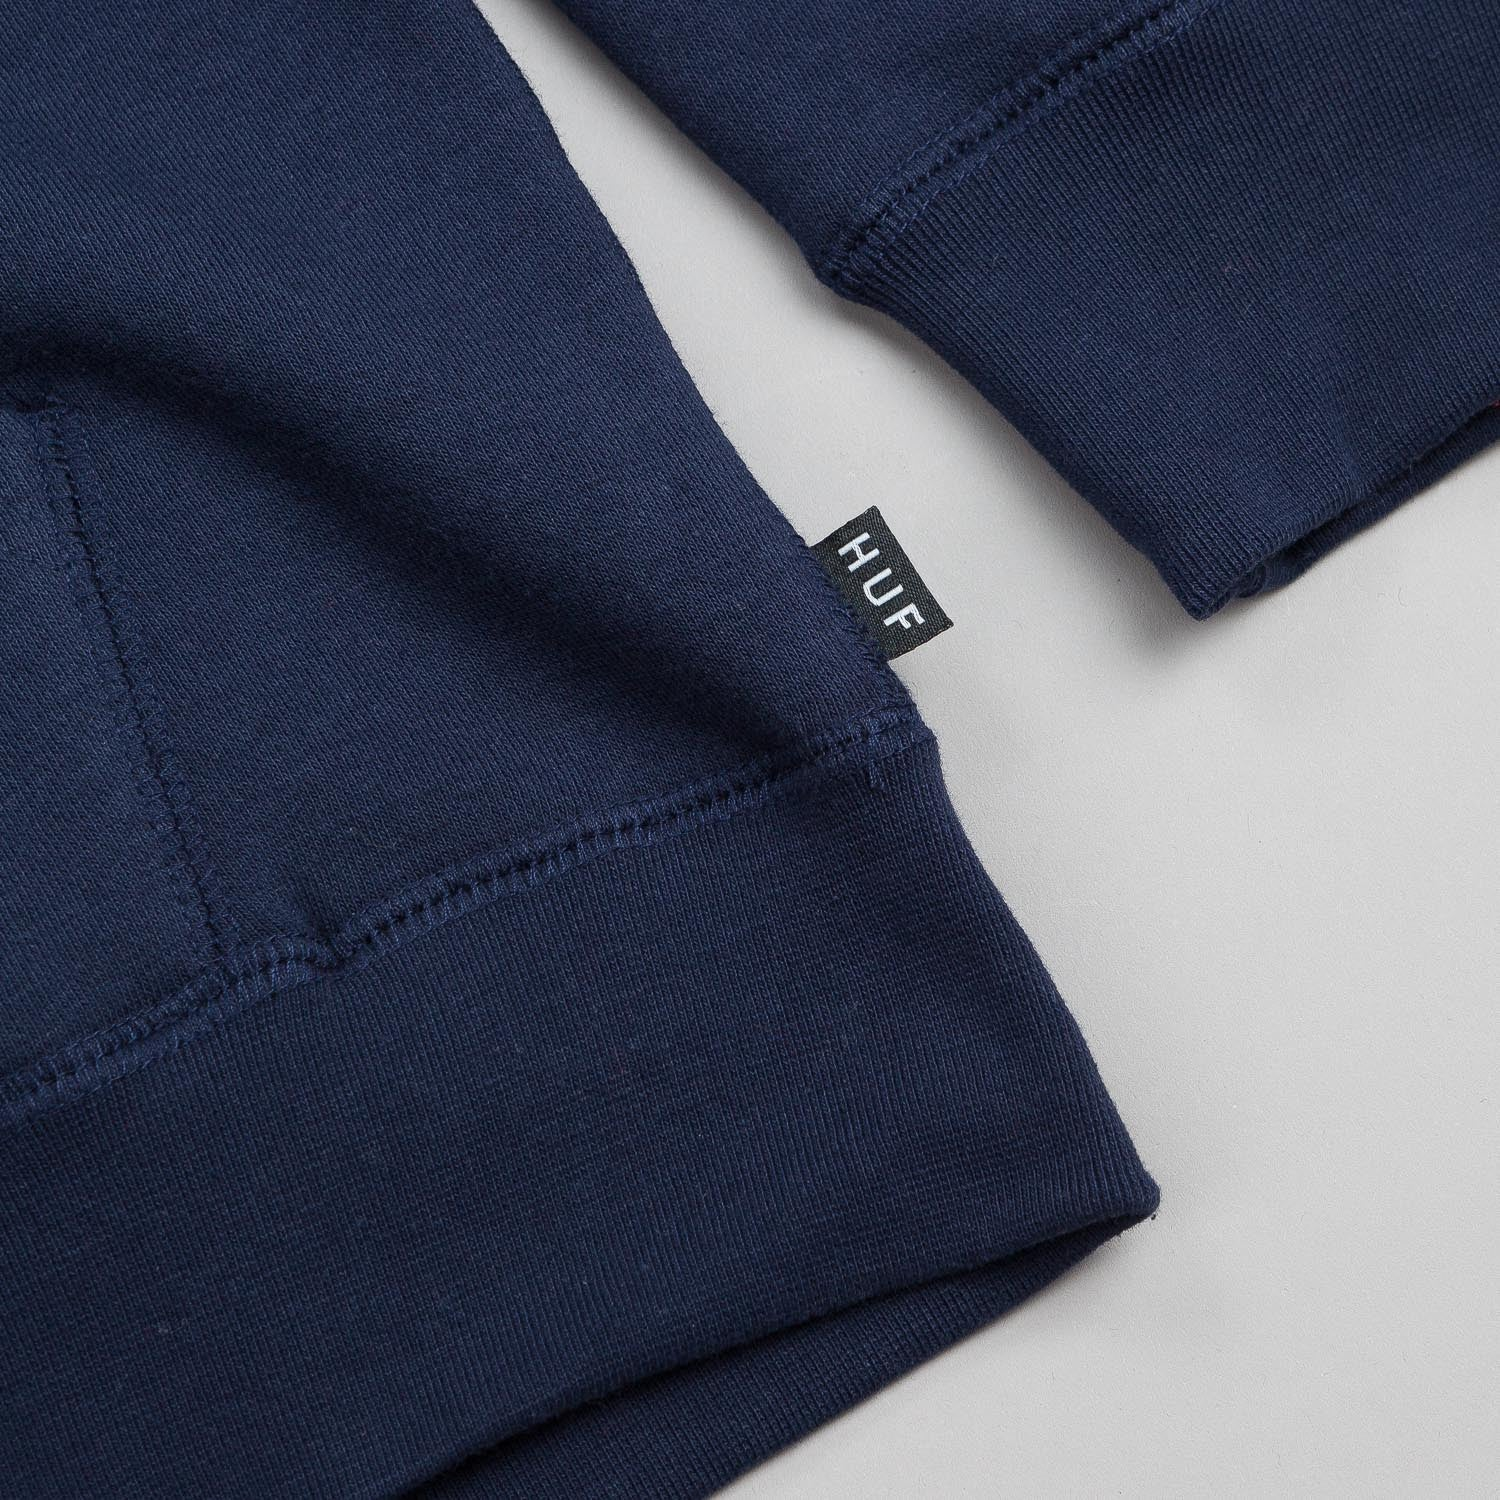 HUF Big Script Zip Hooded Sweatshirt - Navy